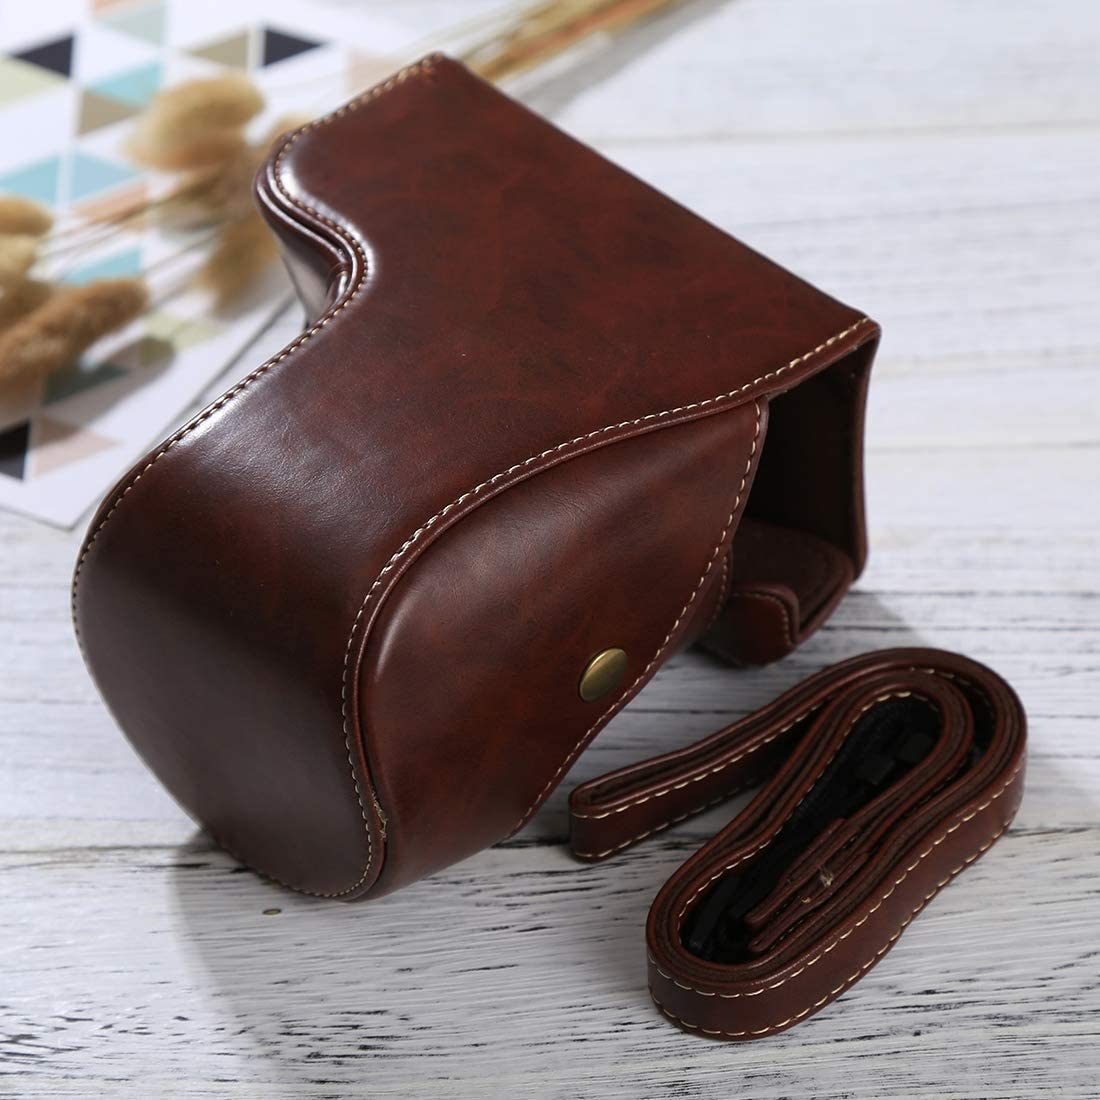 A6500 Black MEETBM ZIMO,Full Body Camera PU Leather Case Bag with Strap for Sony ILCE-6500 Color : Coffee